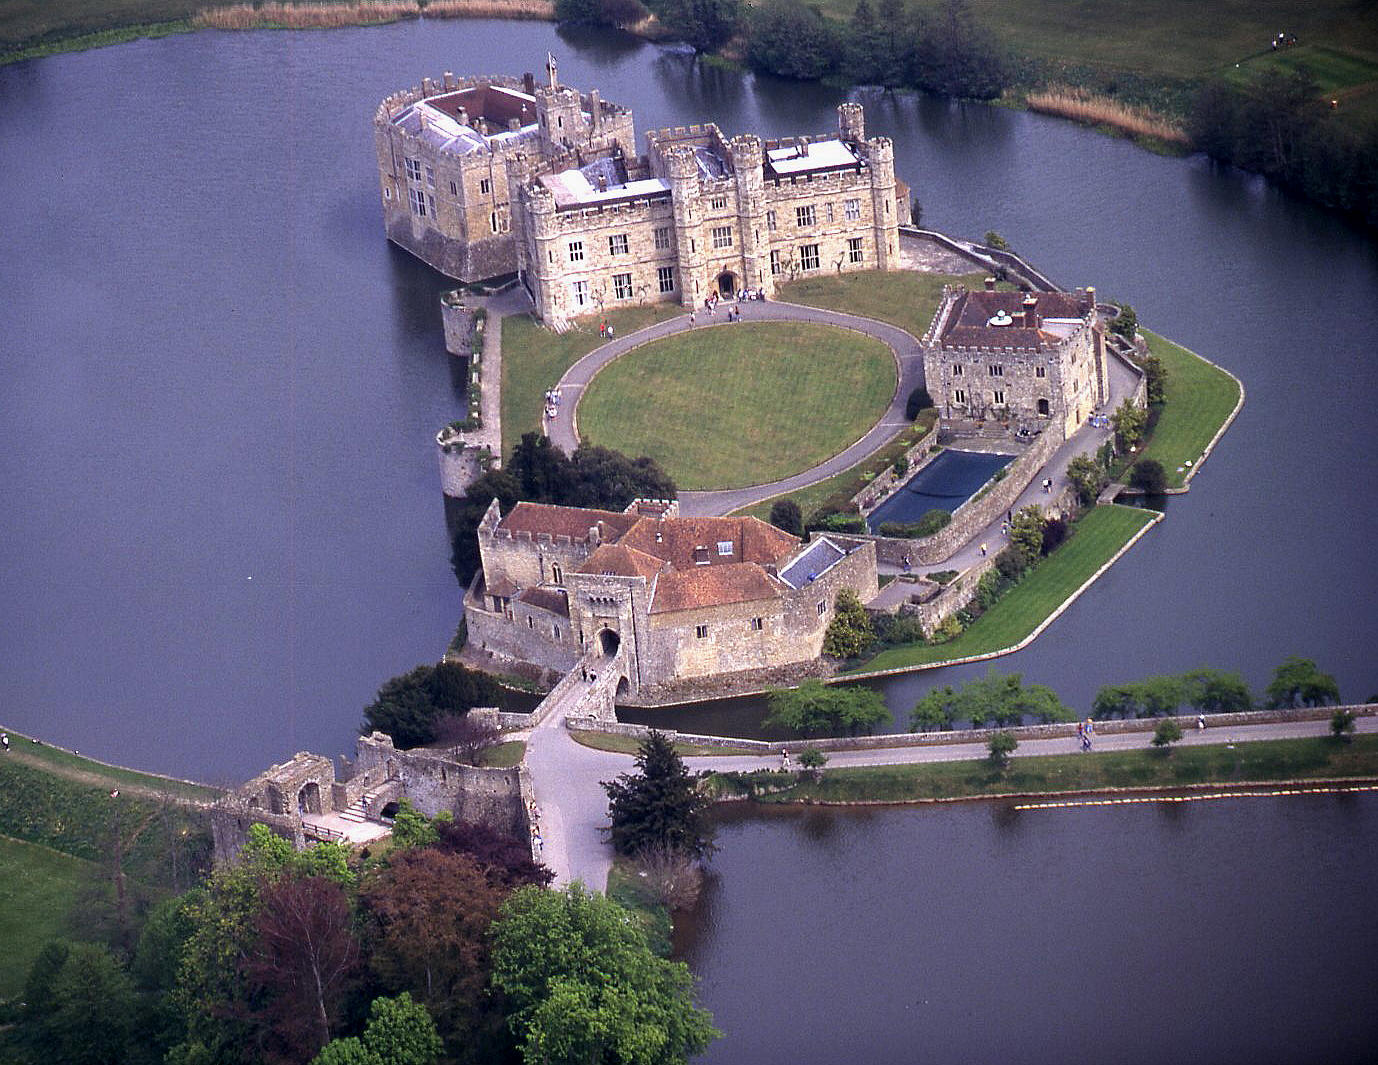 A closer view of Leeds Castle in Kent